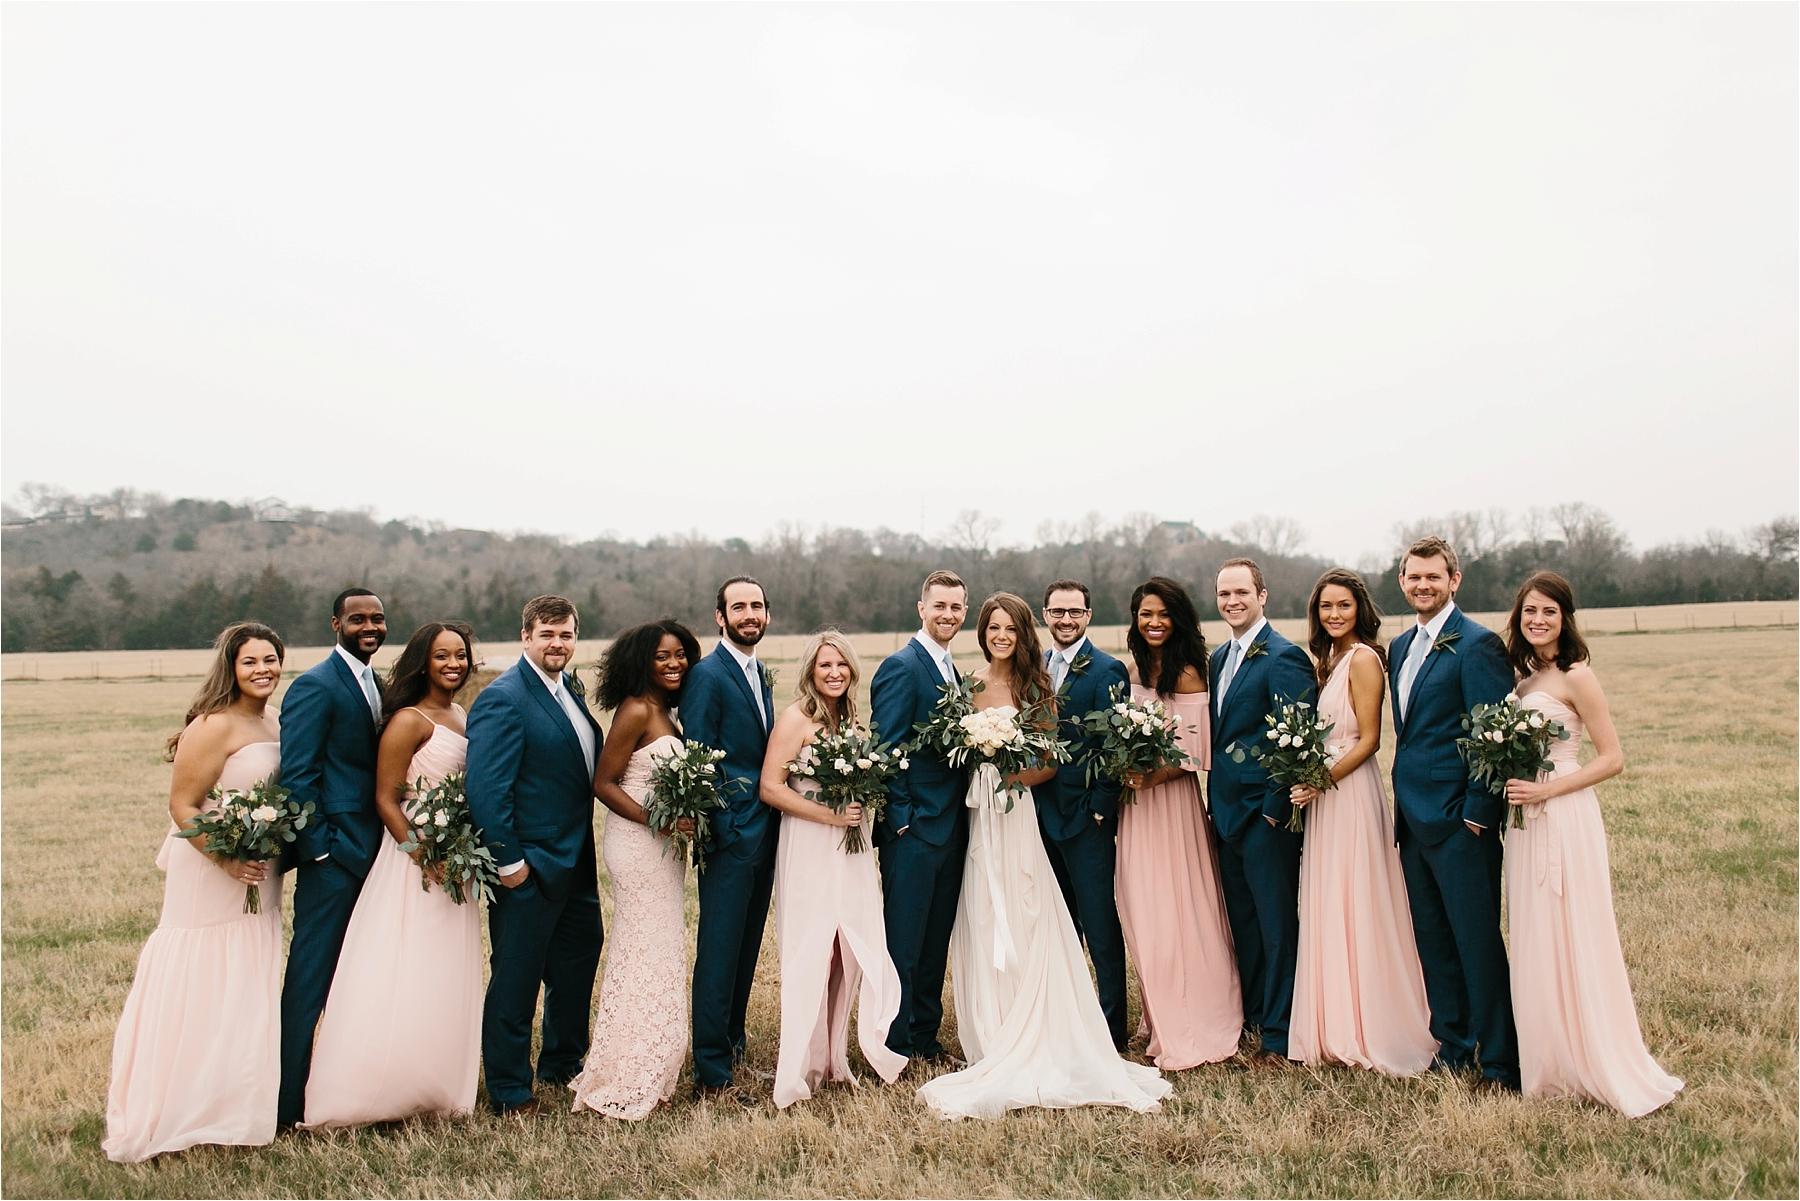 Lauren + Matt __ an intimate, emotional, blush pink, navy blue, and greenery toned wedding accents at the Brooks at Weatherford by North Texas Wedding Photographer Rachel Meagan Photography088